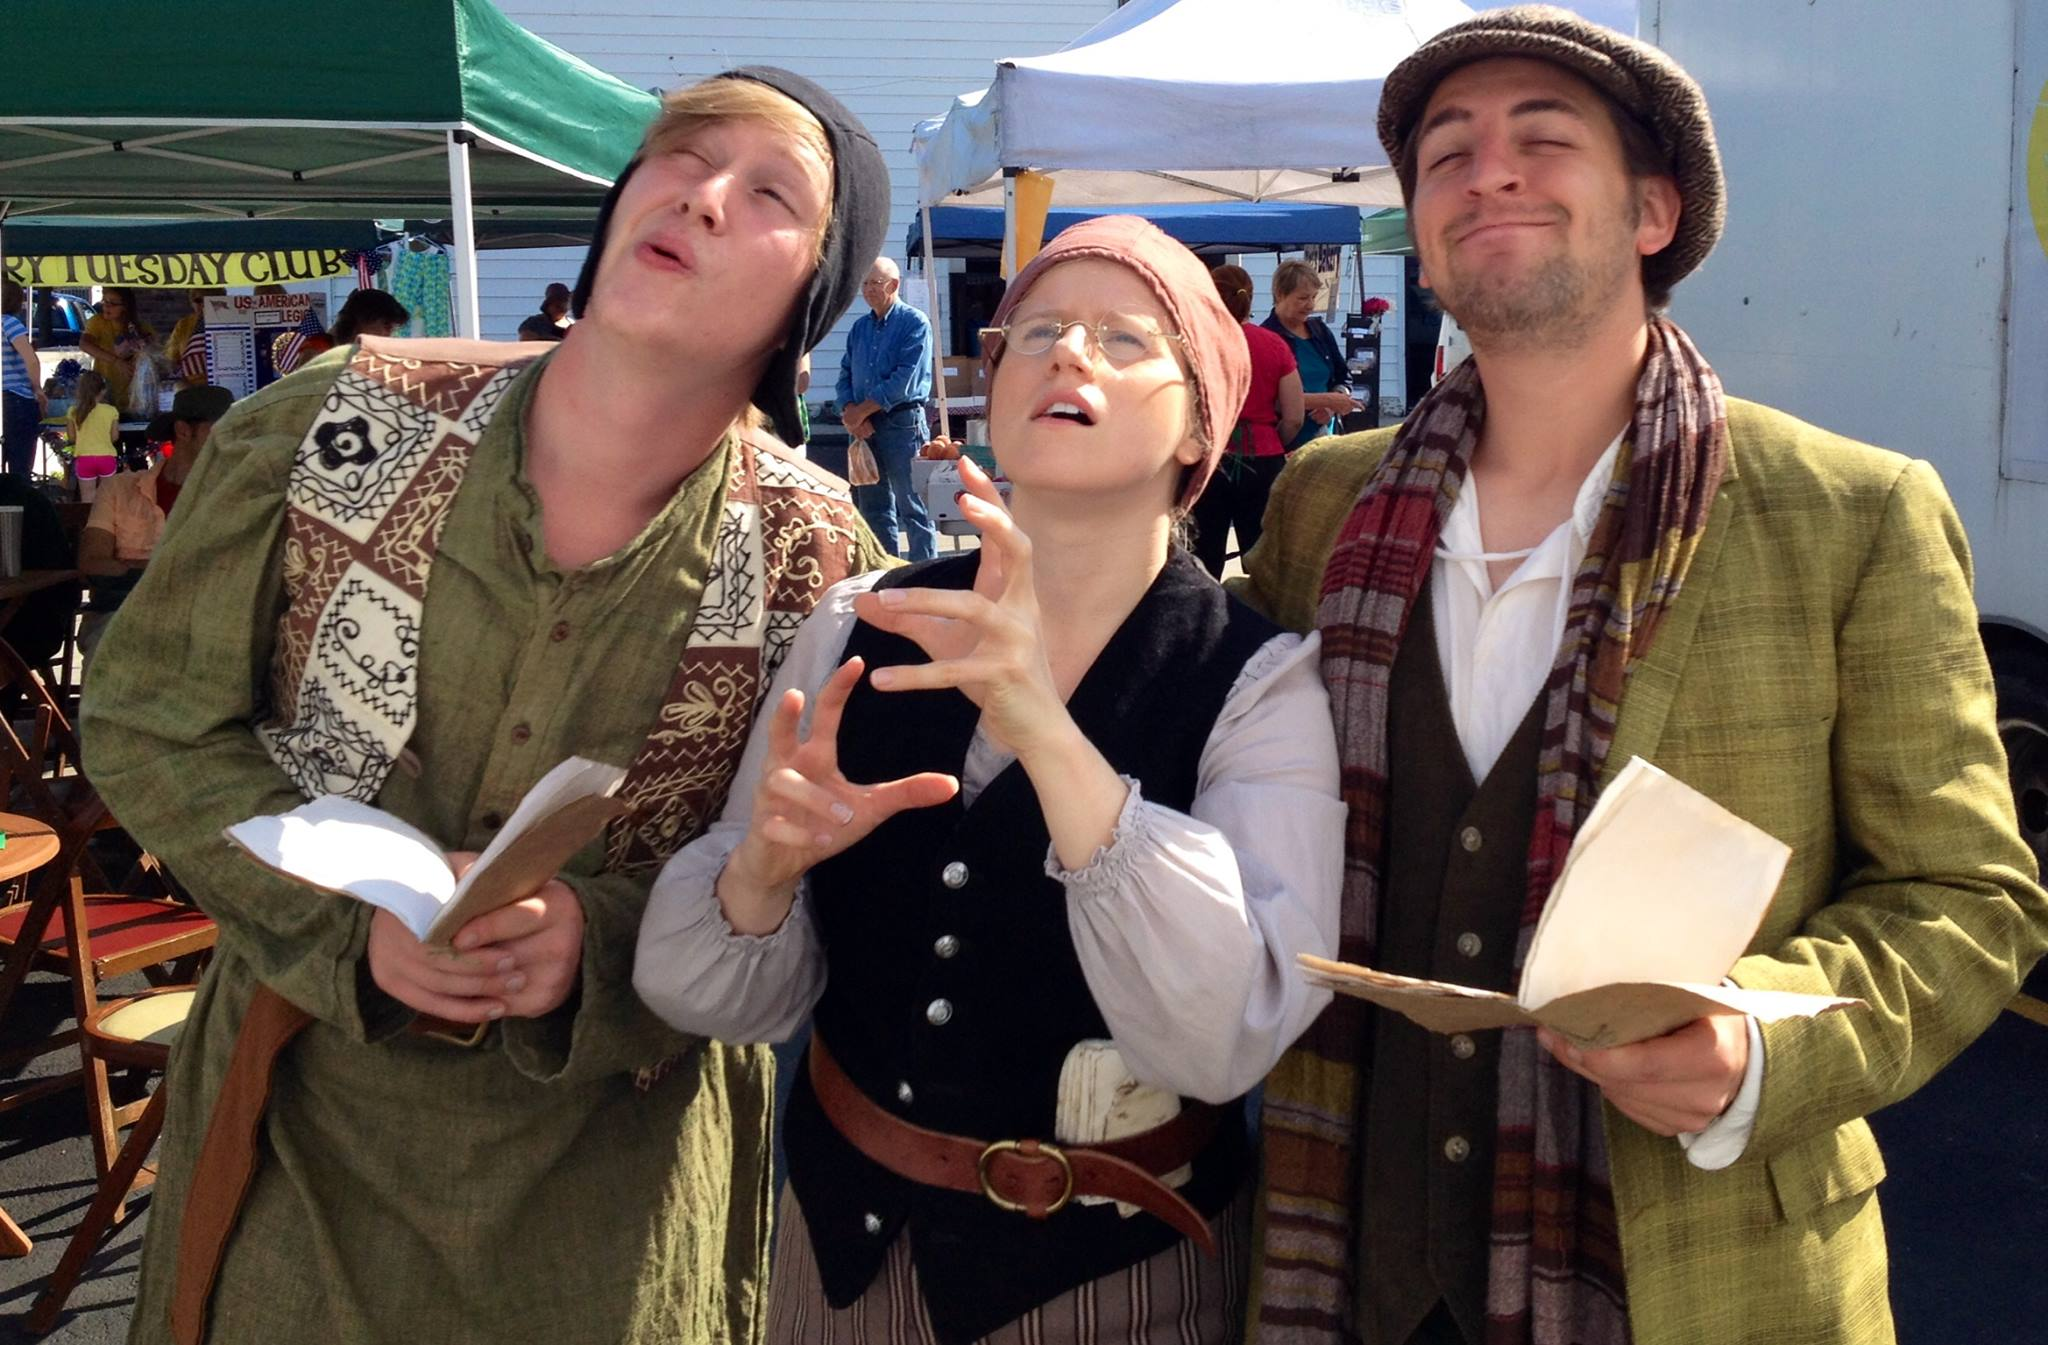 The Rude Mechanicals at the Farmers Market